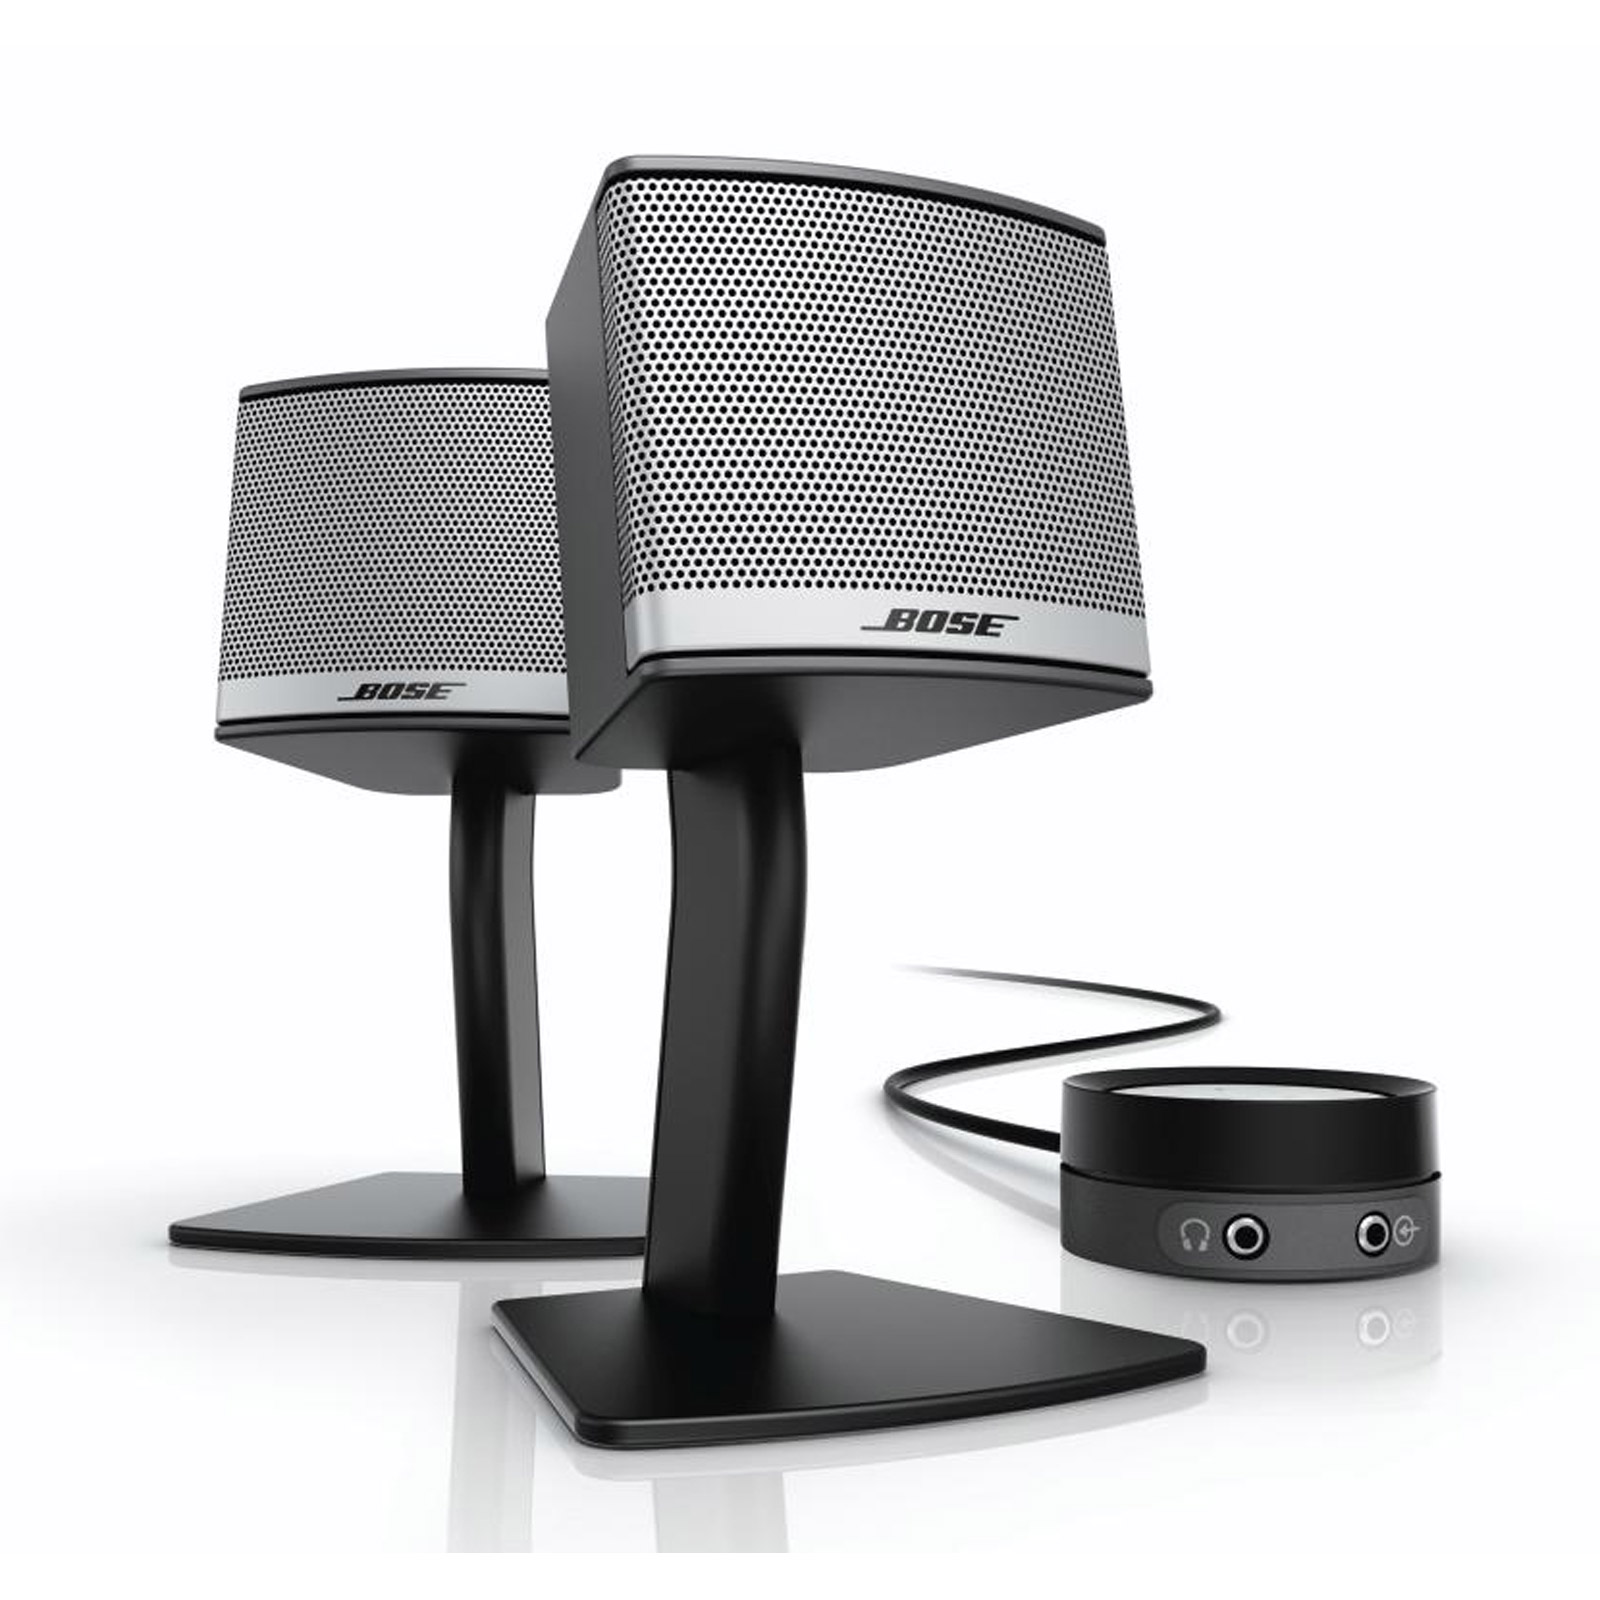 bose companion 3 enceinte pc bose sur. Black Bedroom Furniture Sets. Home Design Ideas